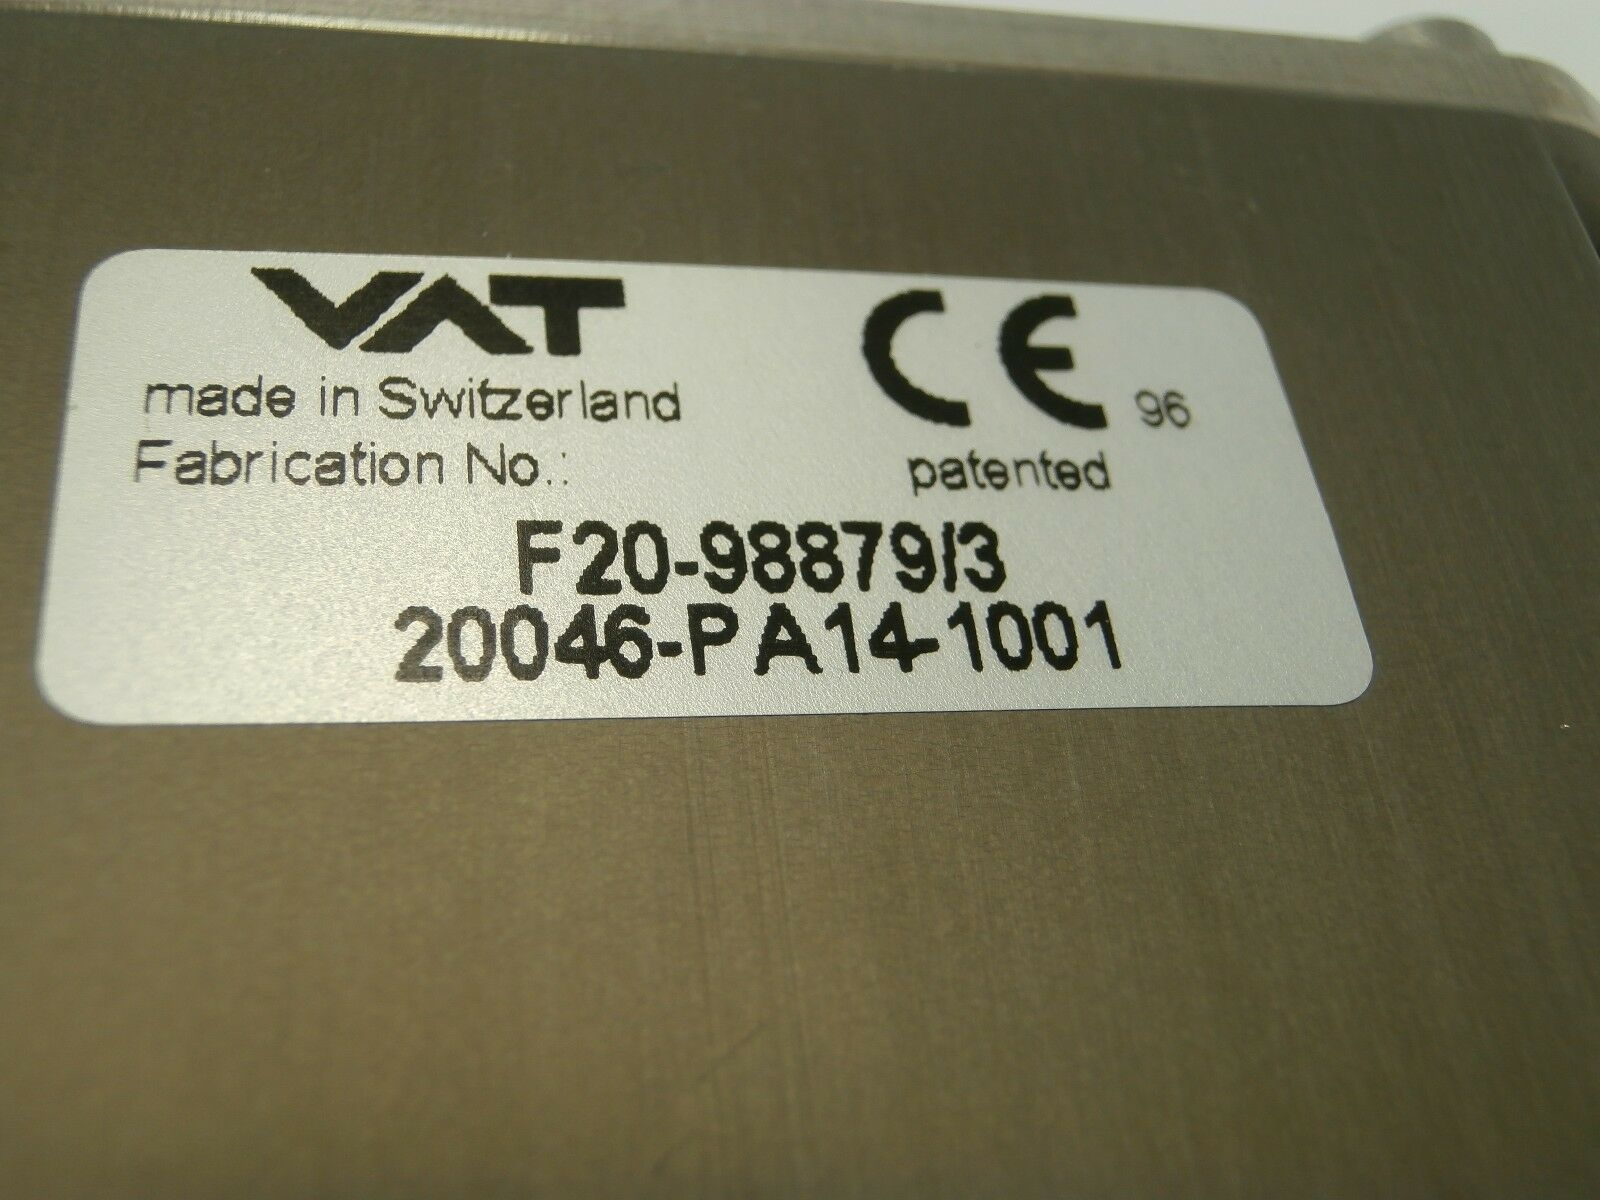 VAT 20046-PA14-1001 Vatterfly Valve Series 200 Used Working